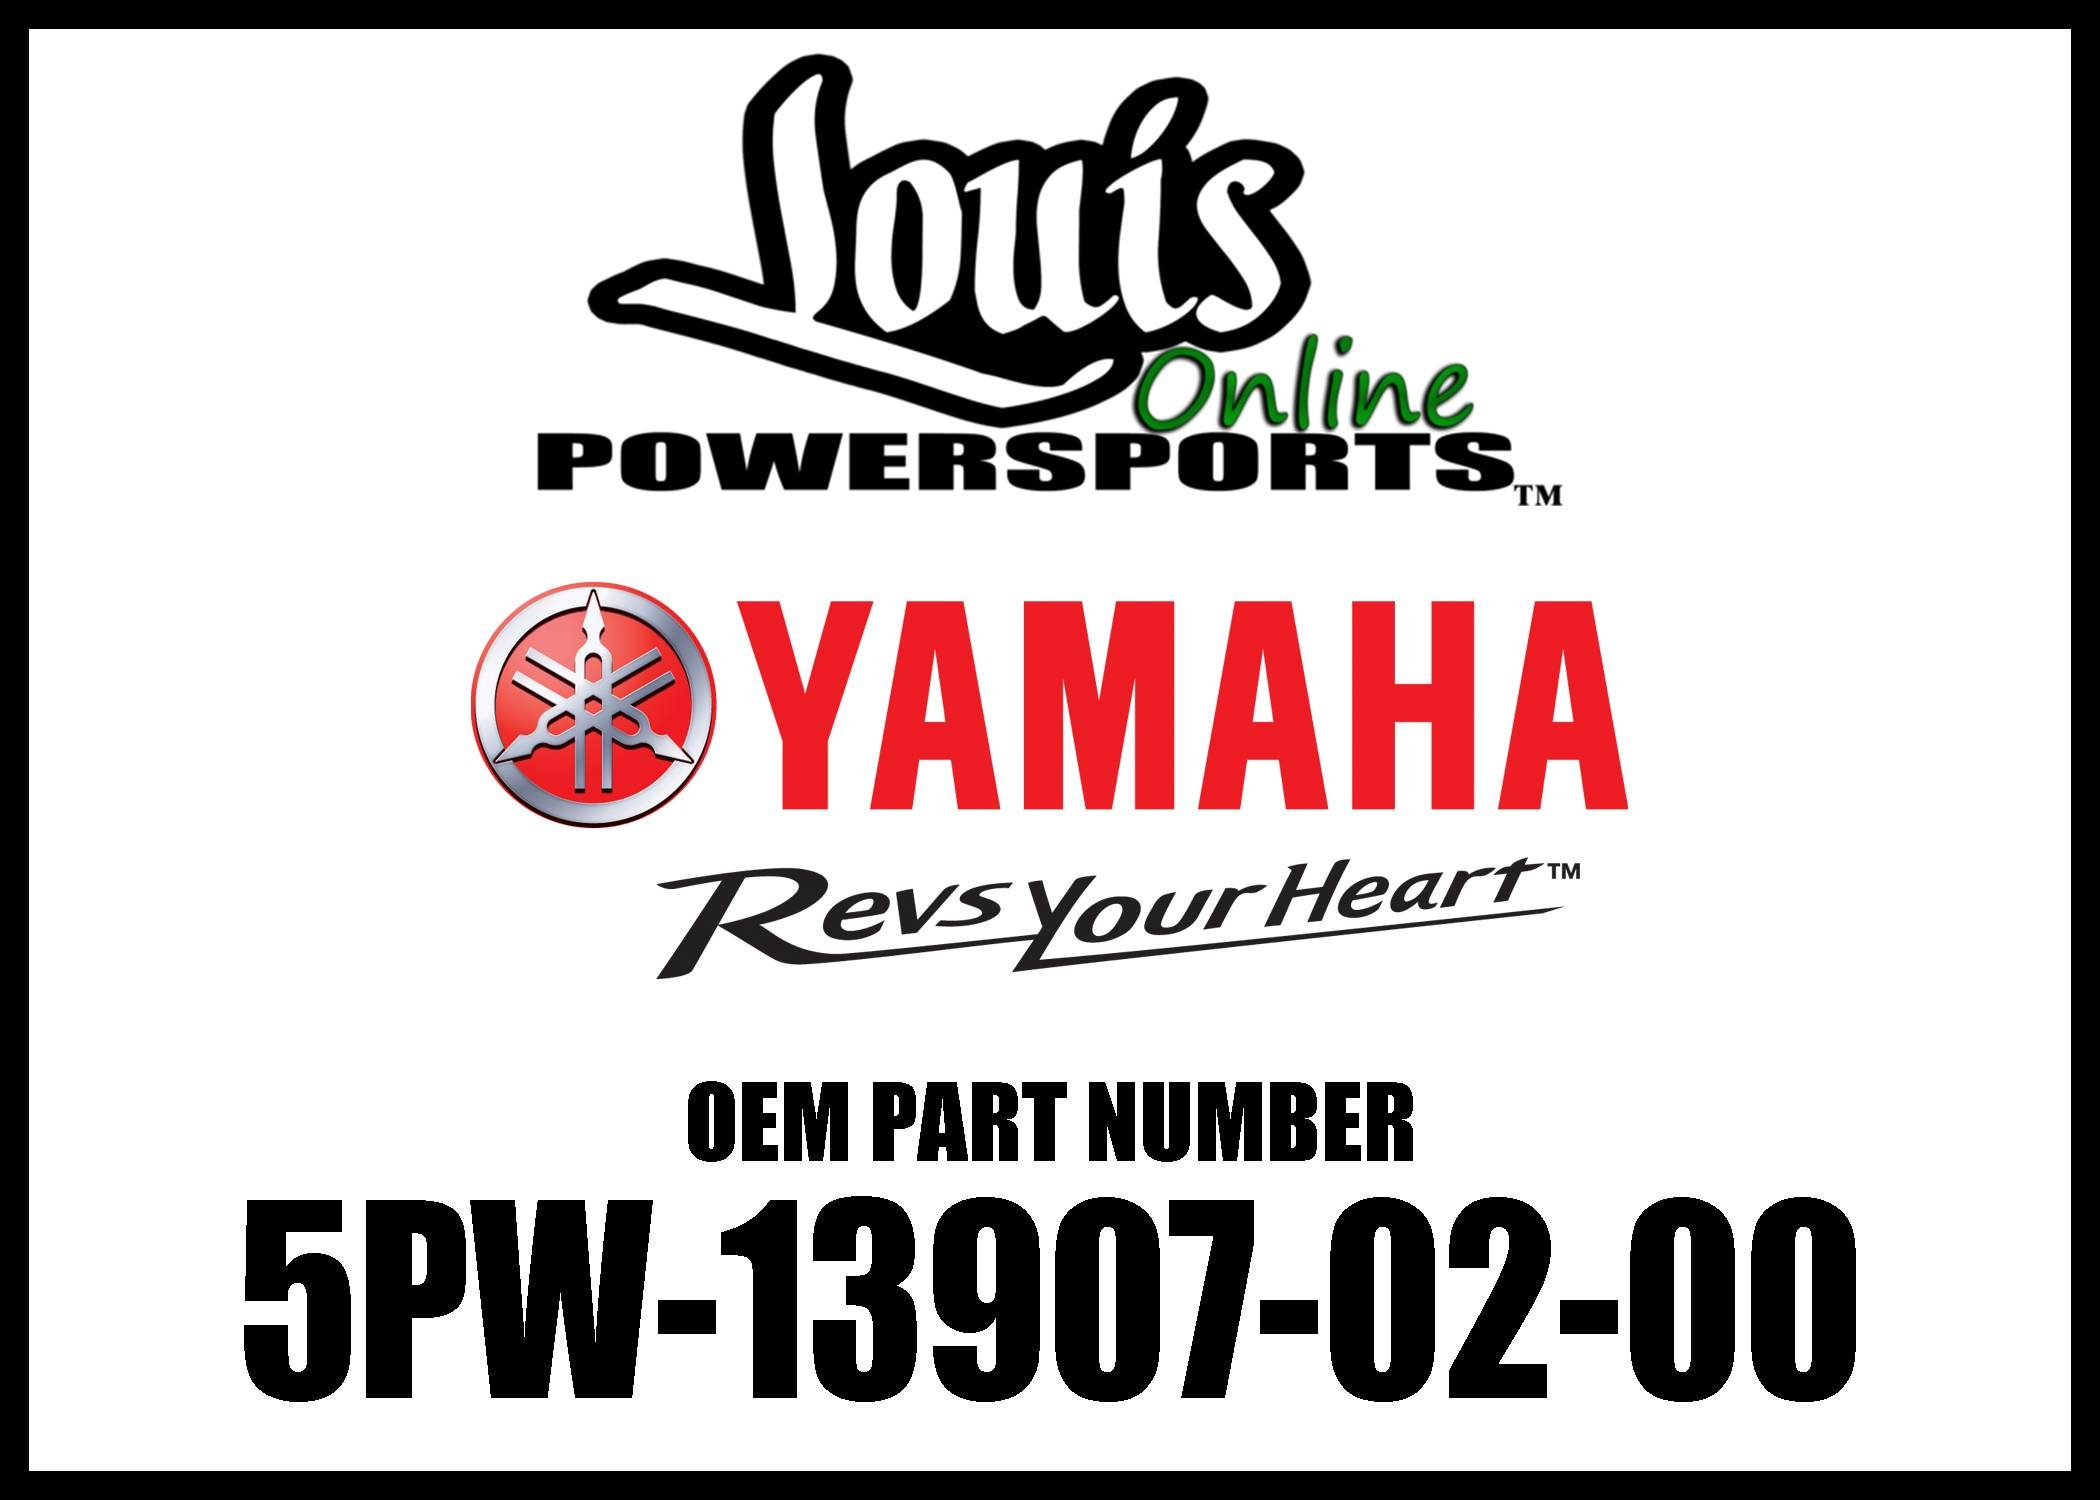 Yamaha 5PW-13907-02-00 Fuel Pump Complete; 5PW139070200 Made by Yamaha